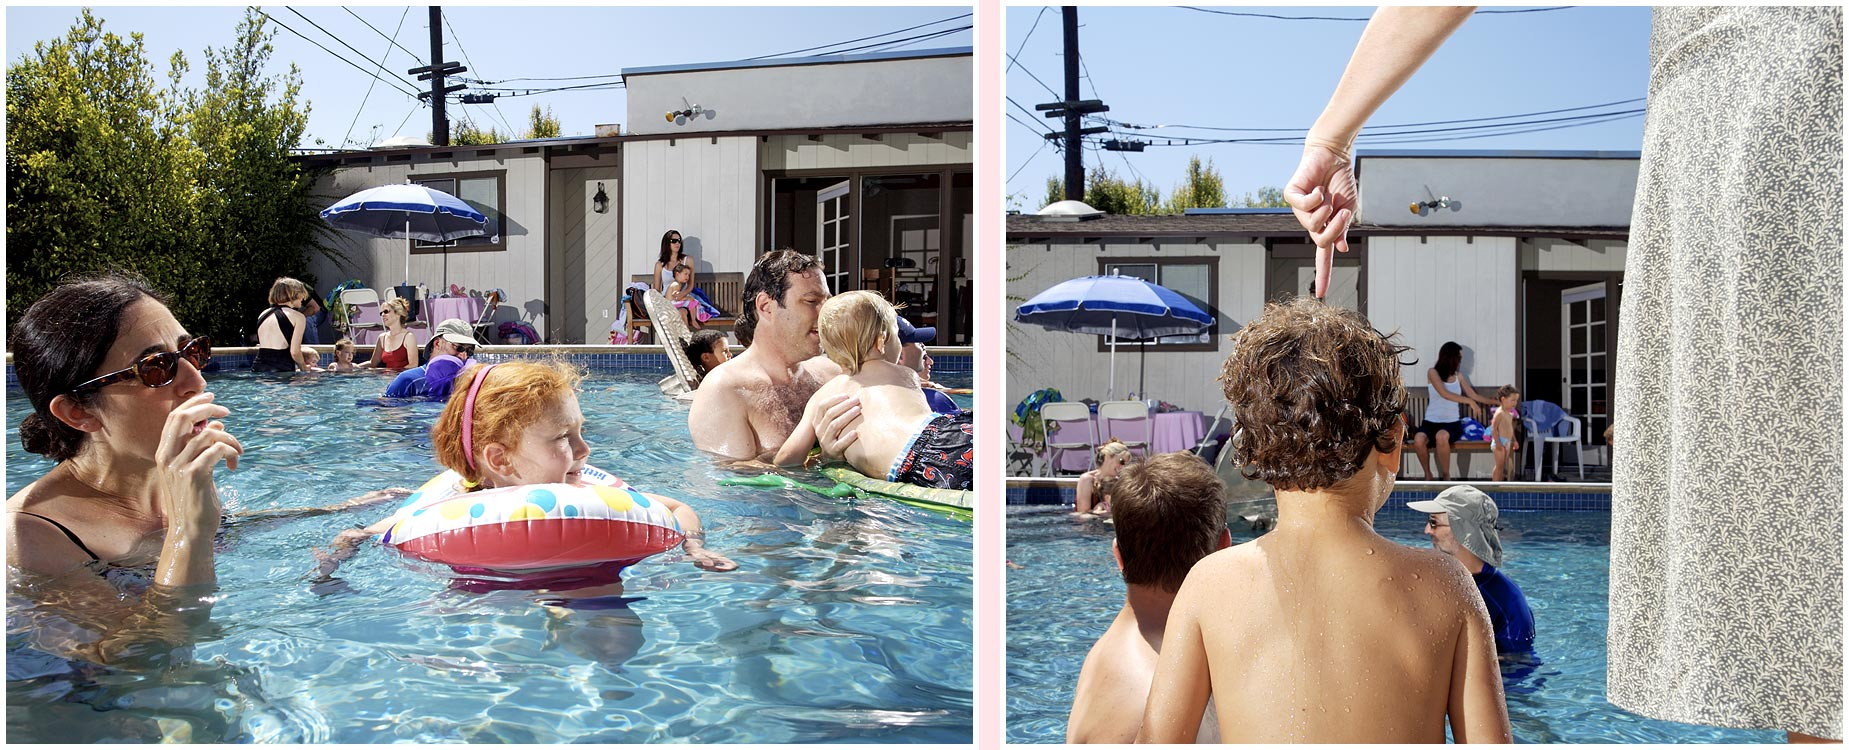 ethanpines_404M-PoolParty.jpg